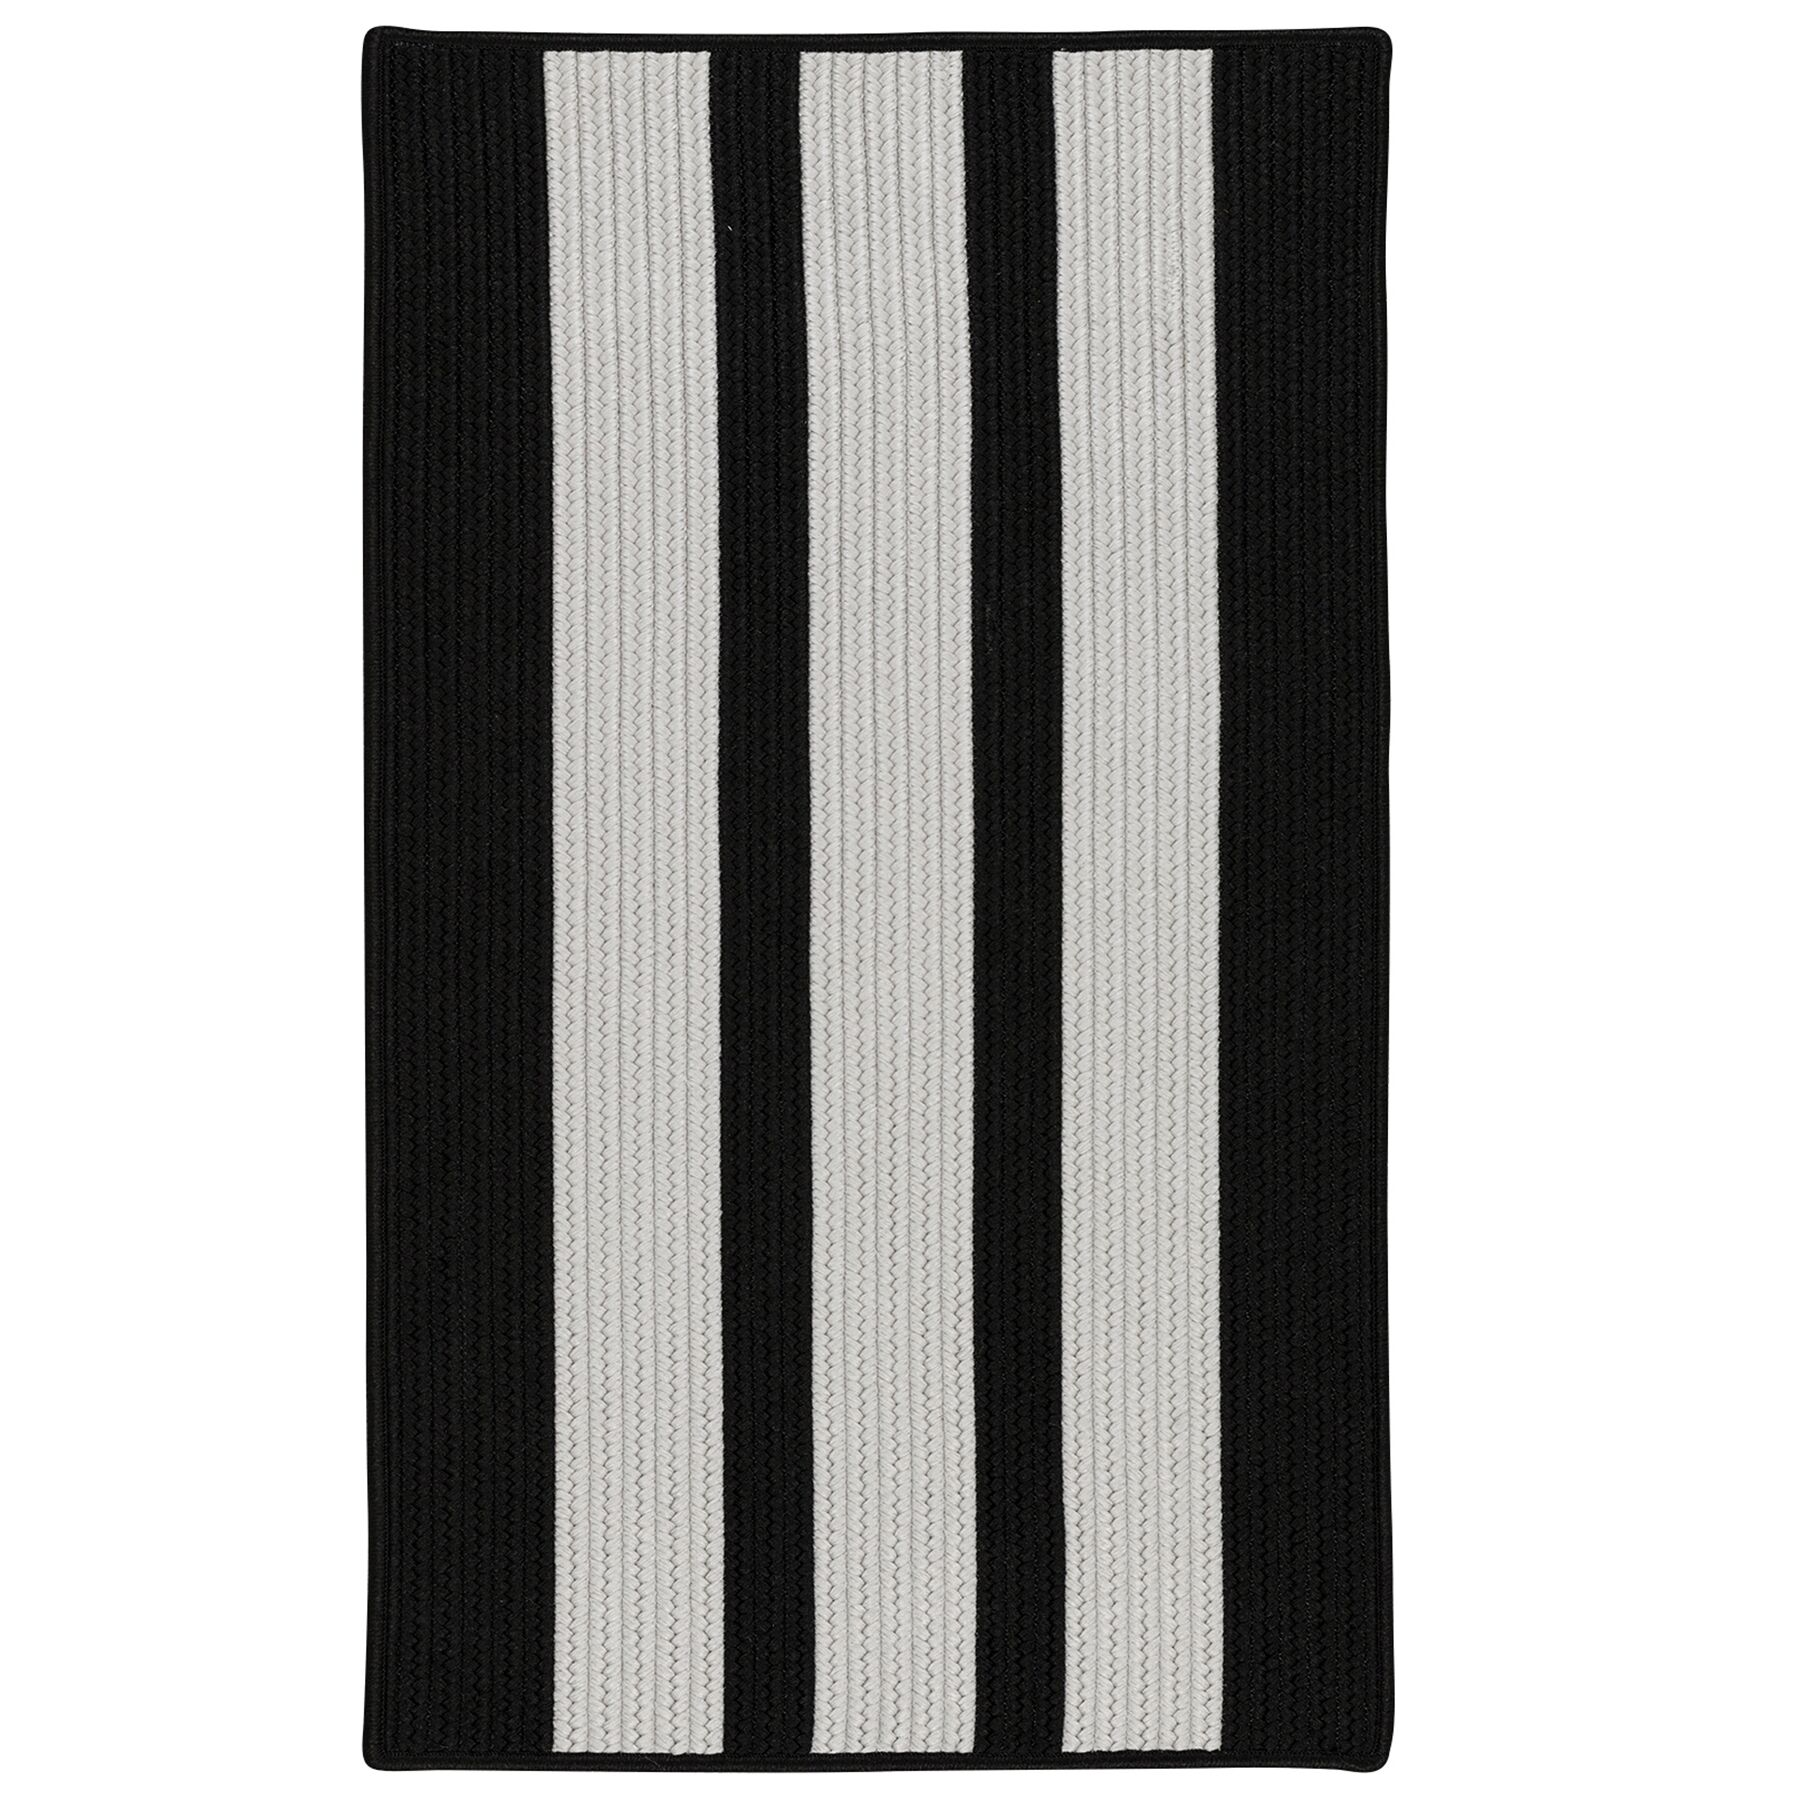 Wes Vertical Stripe Hand-Braided Gray/Black Indoor/Outdoor Area Rug Rug Size: Rectangle 10' x 13'